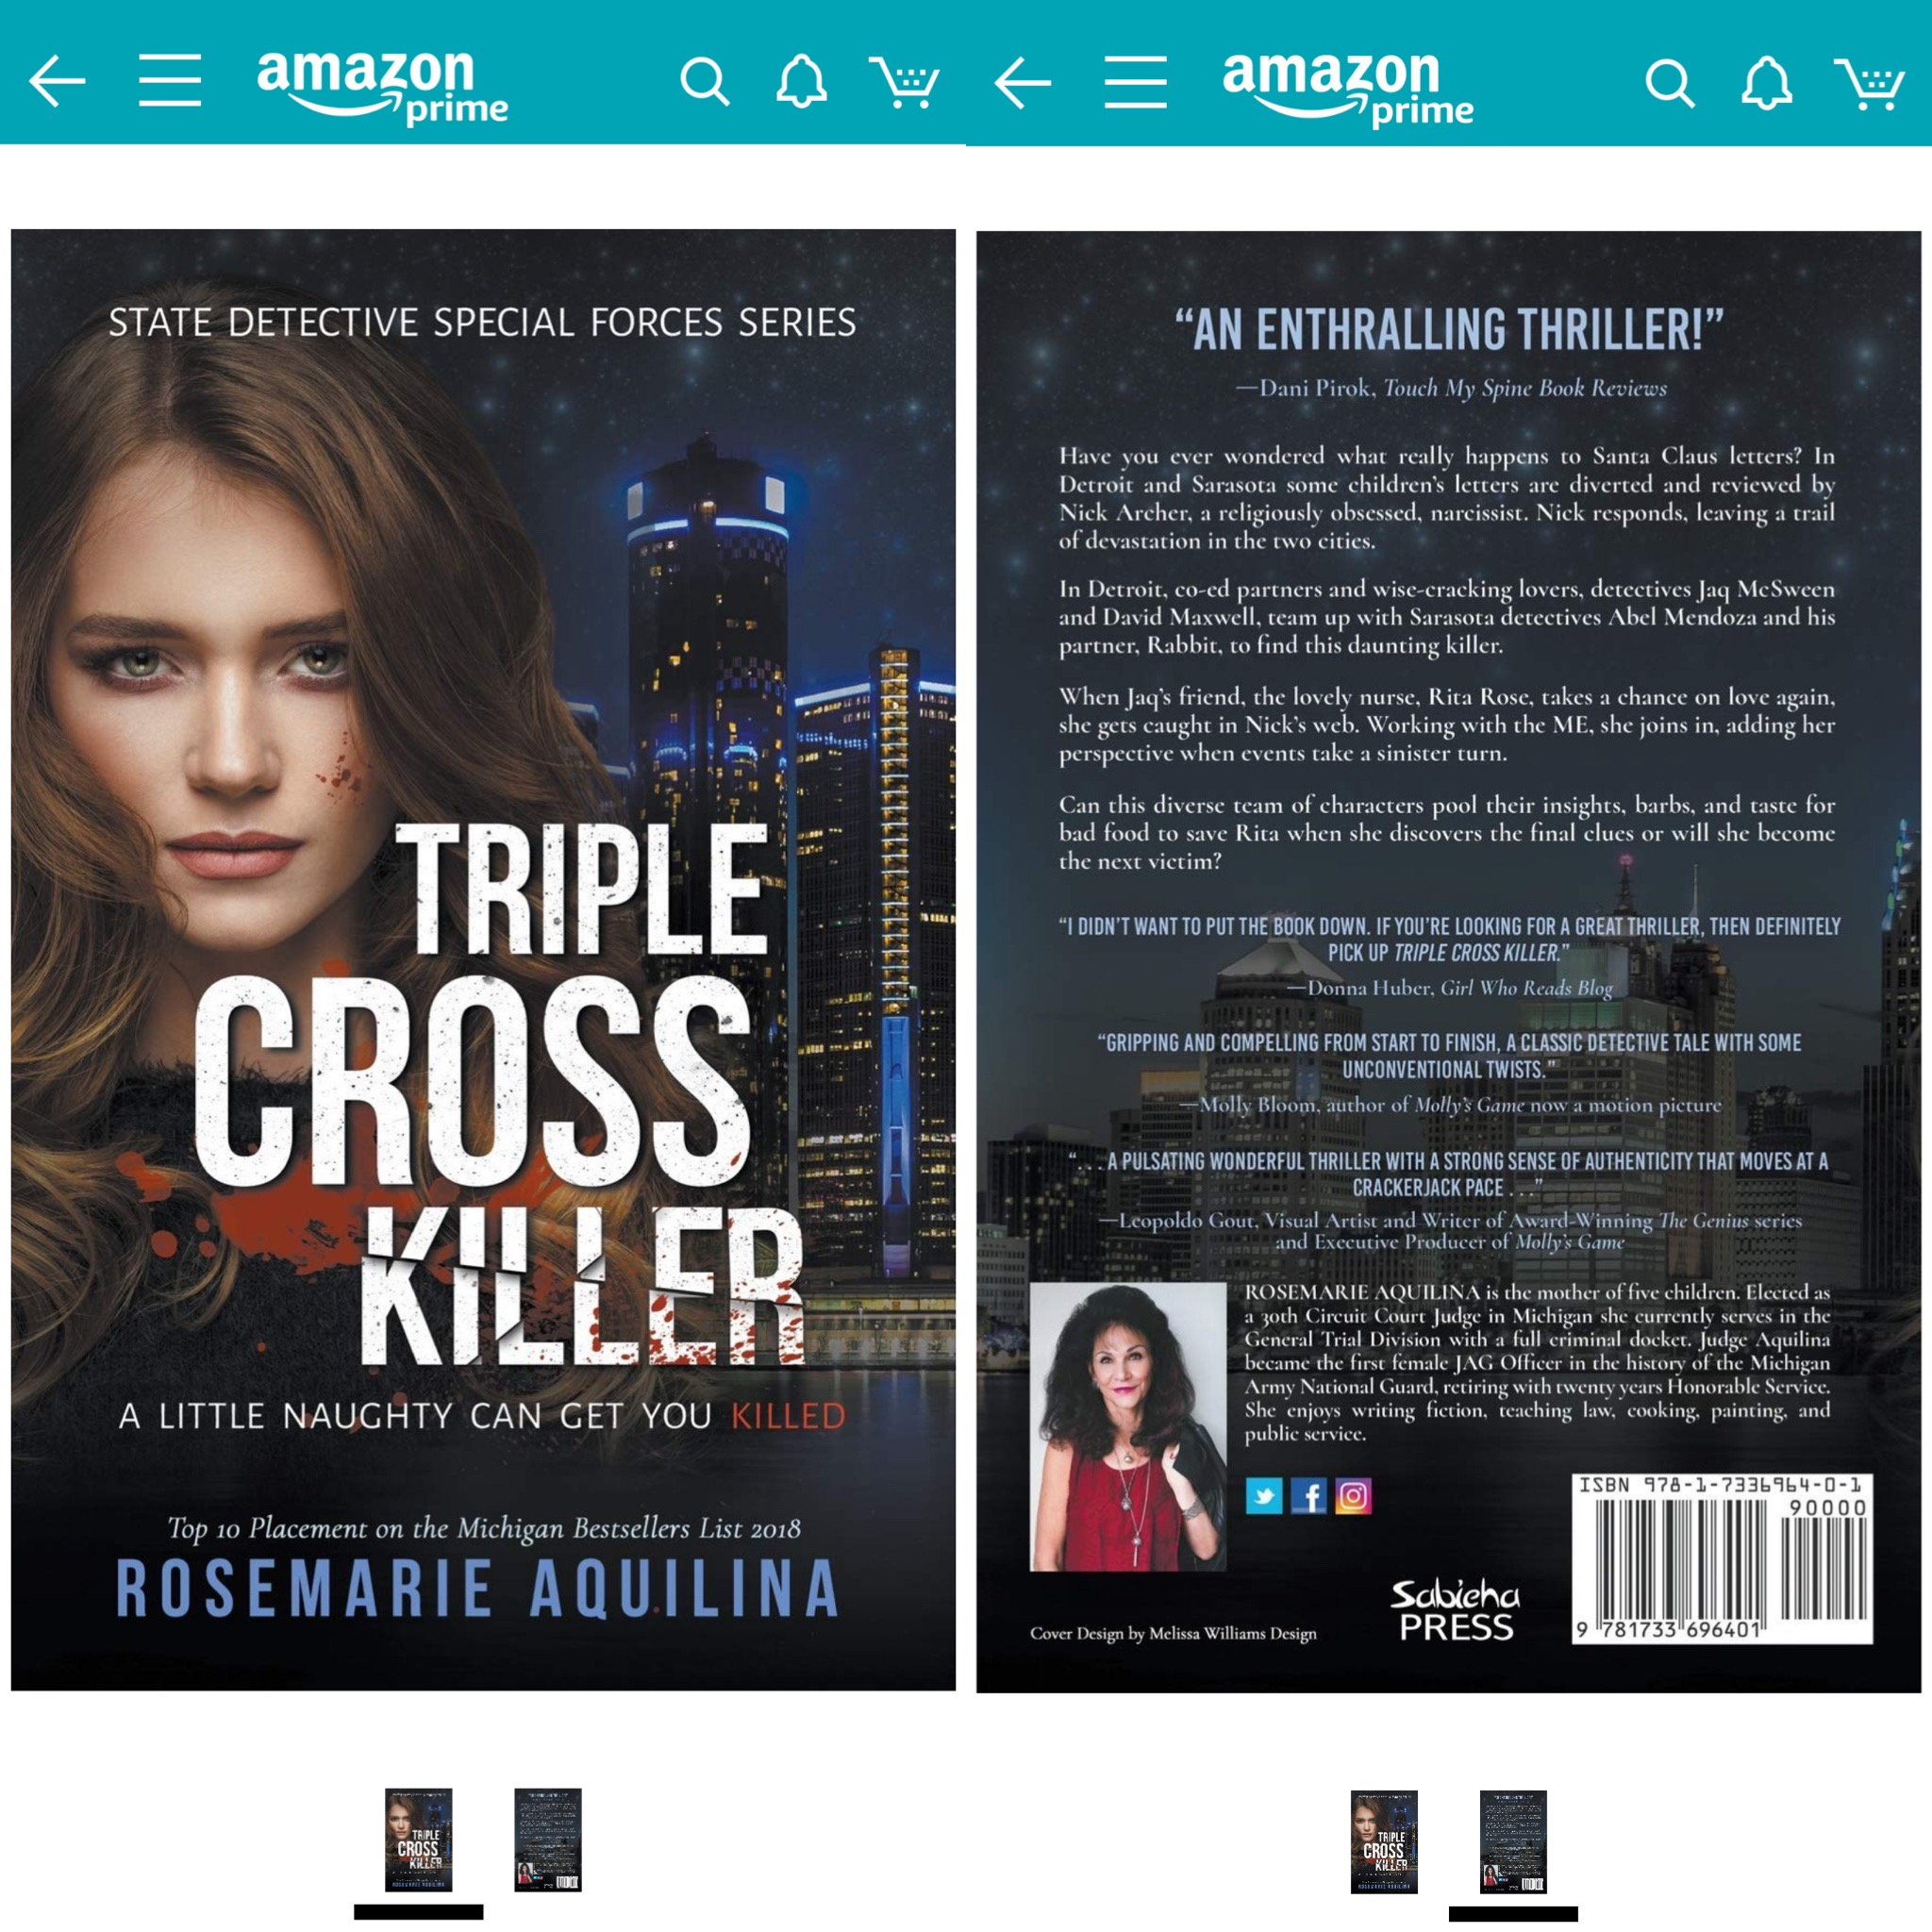 Triple Cross Killer Author Shot